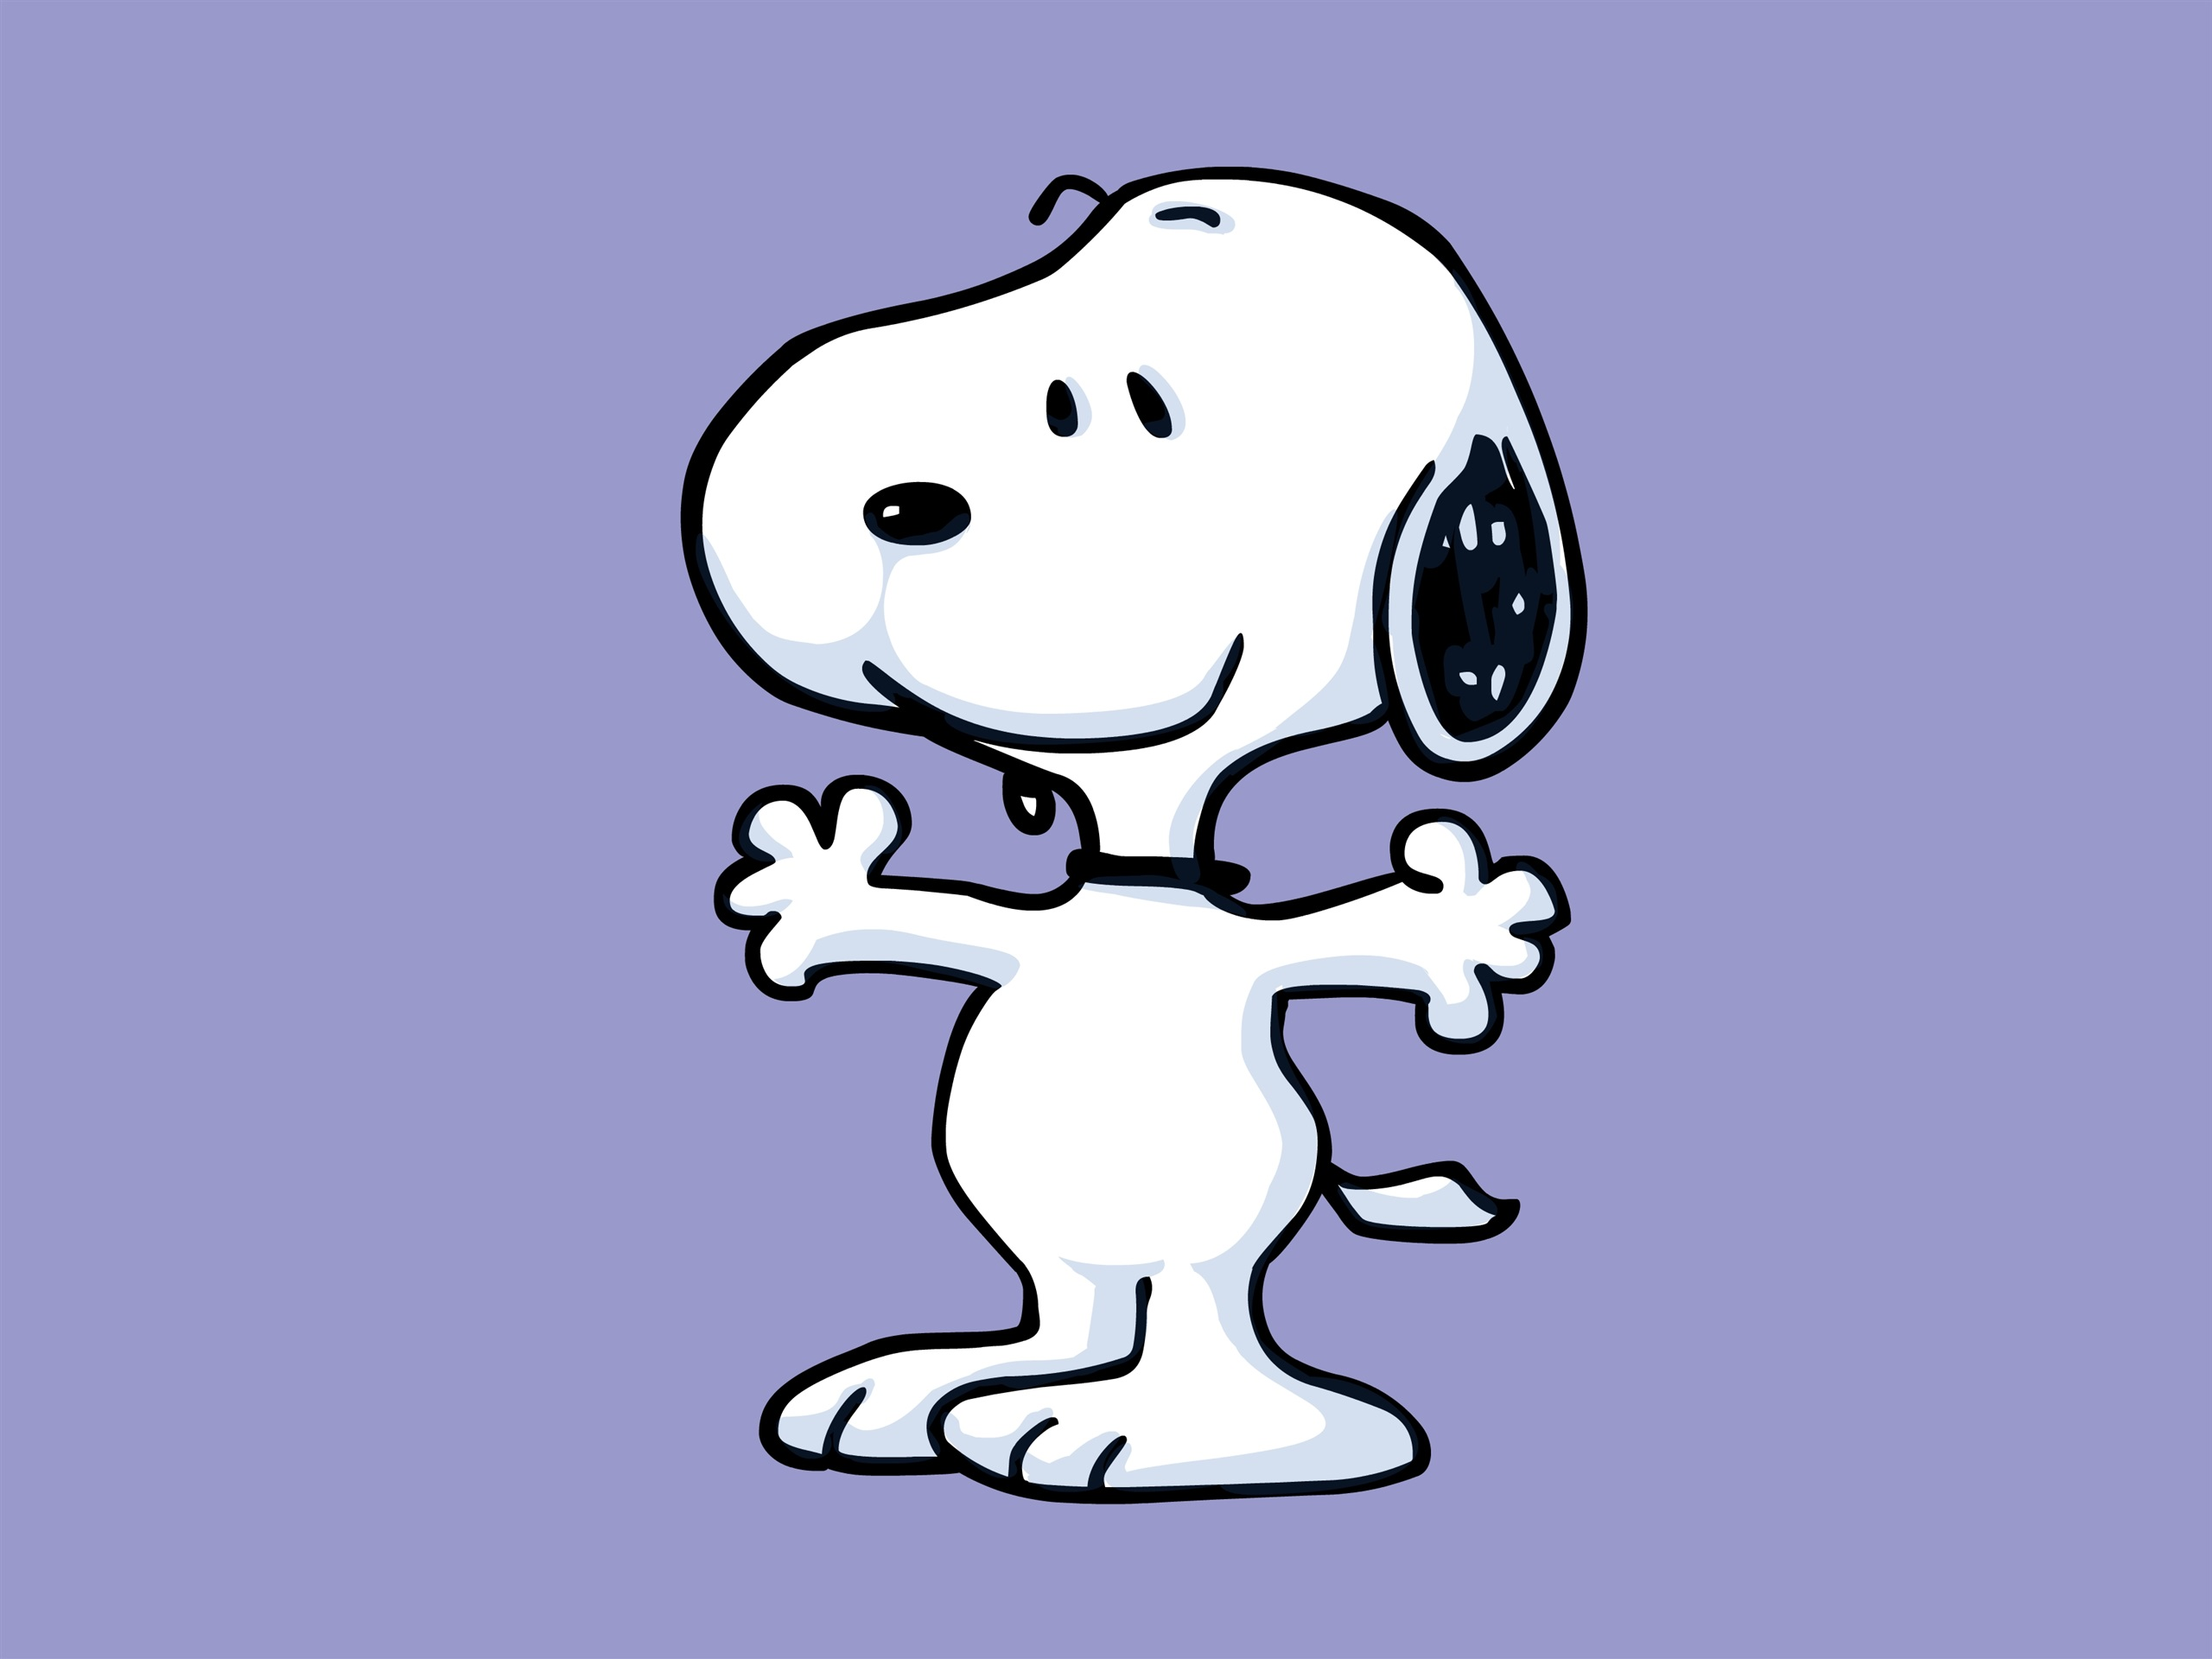 Wallpaper Snoopy Cartoon Star 2880x1800 Hd Picture Image